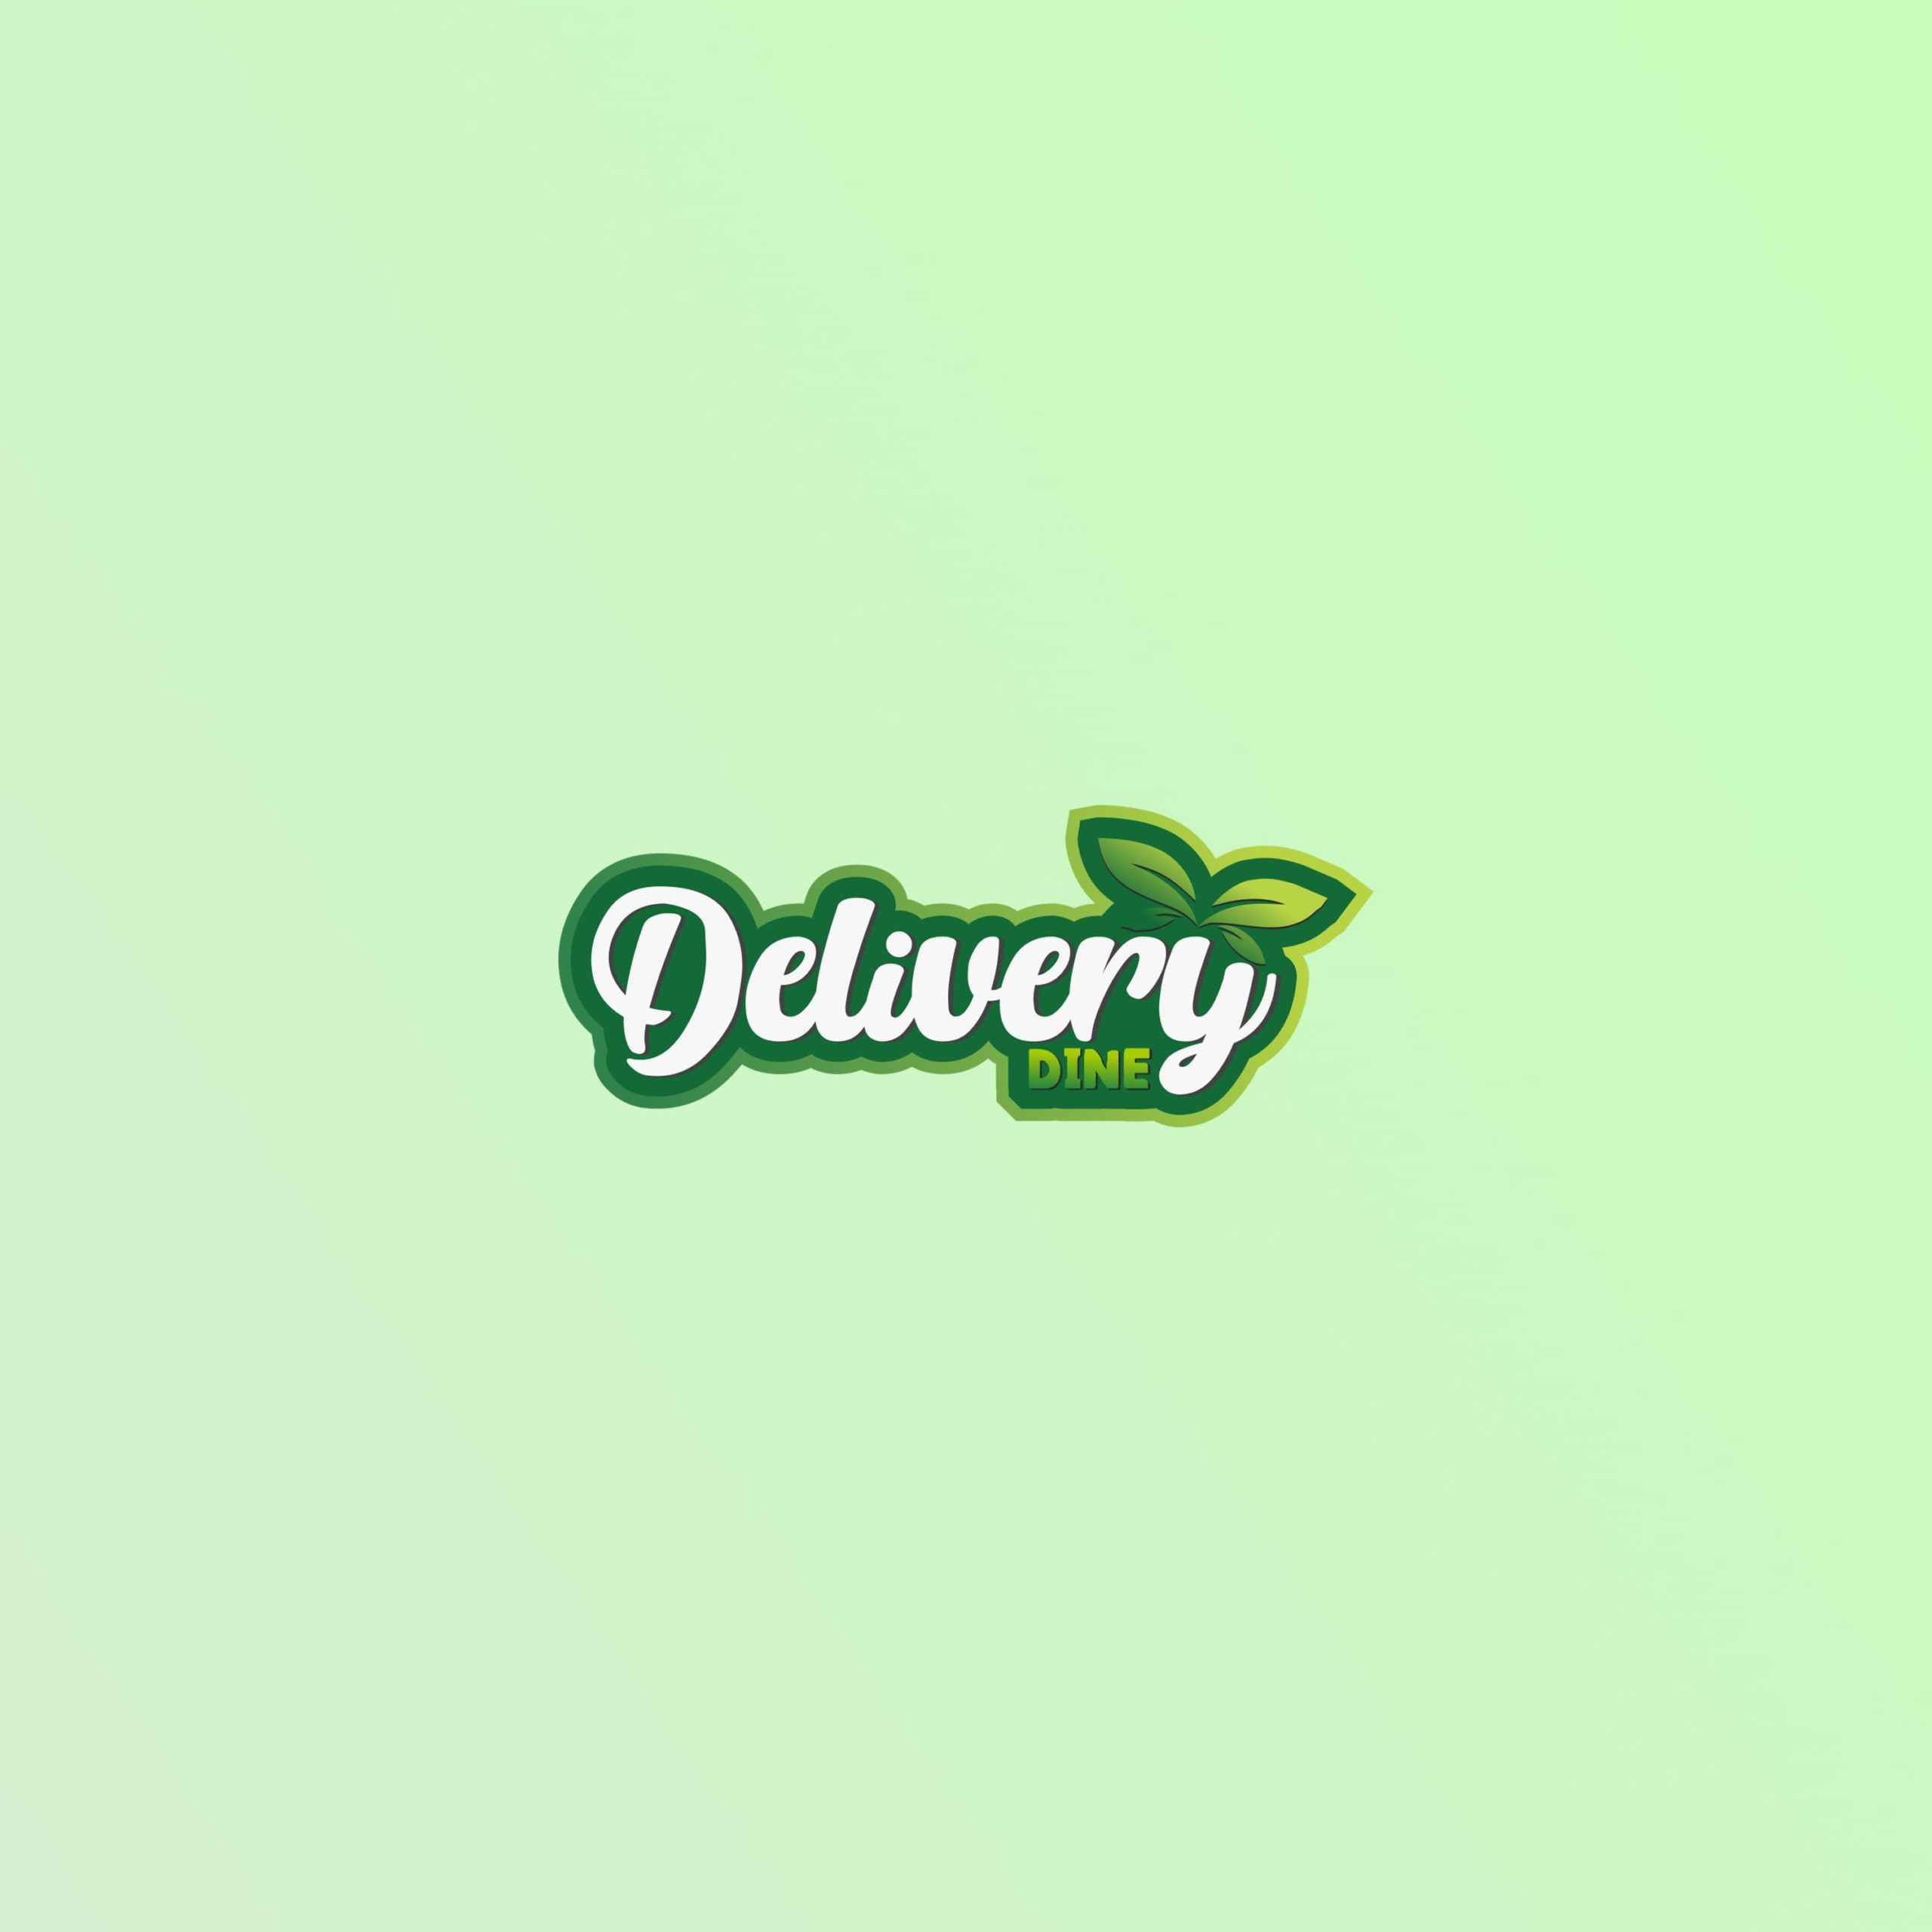 Delivery Dine